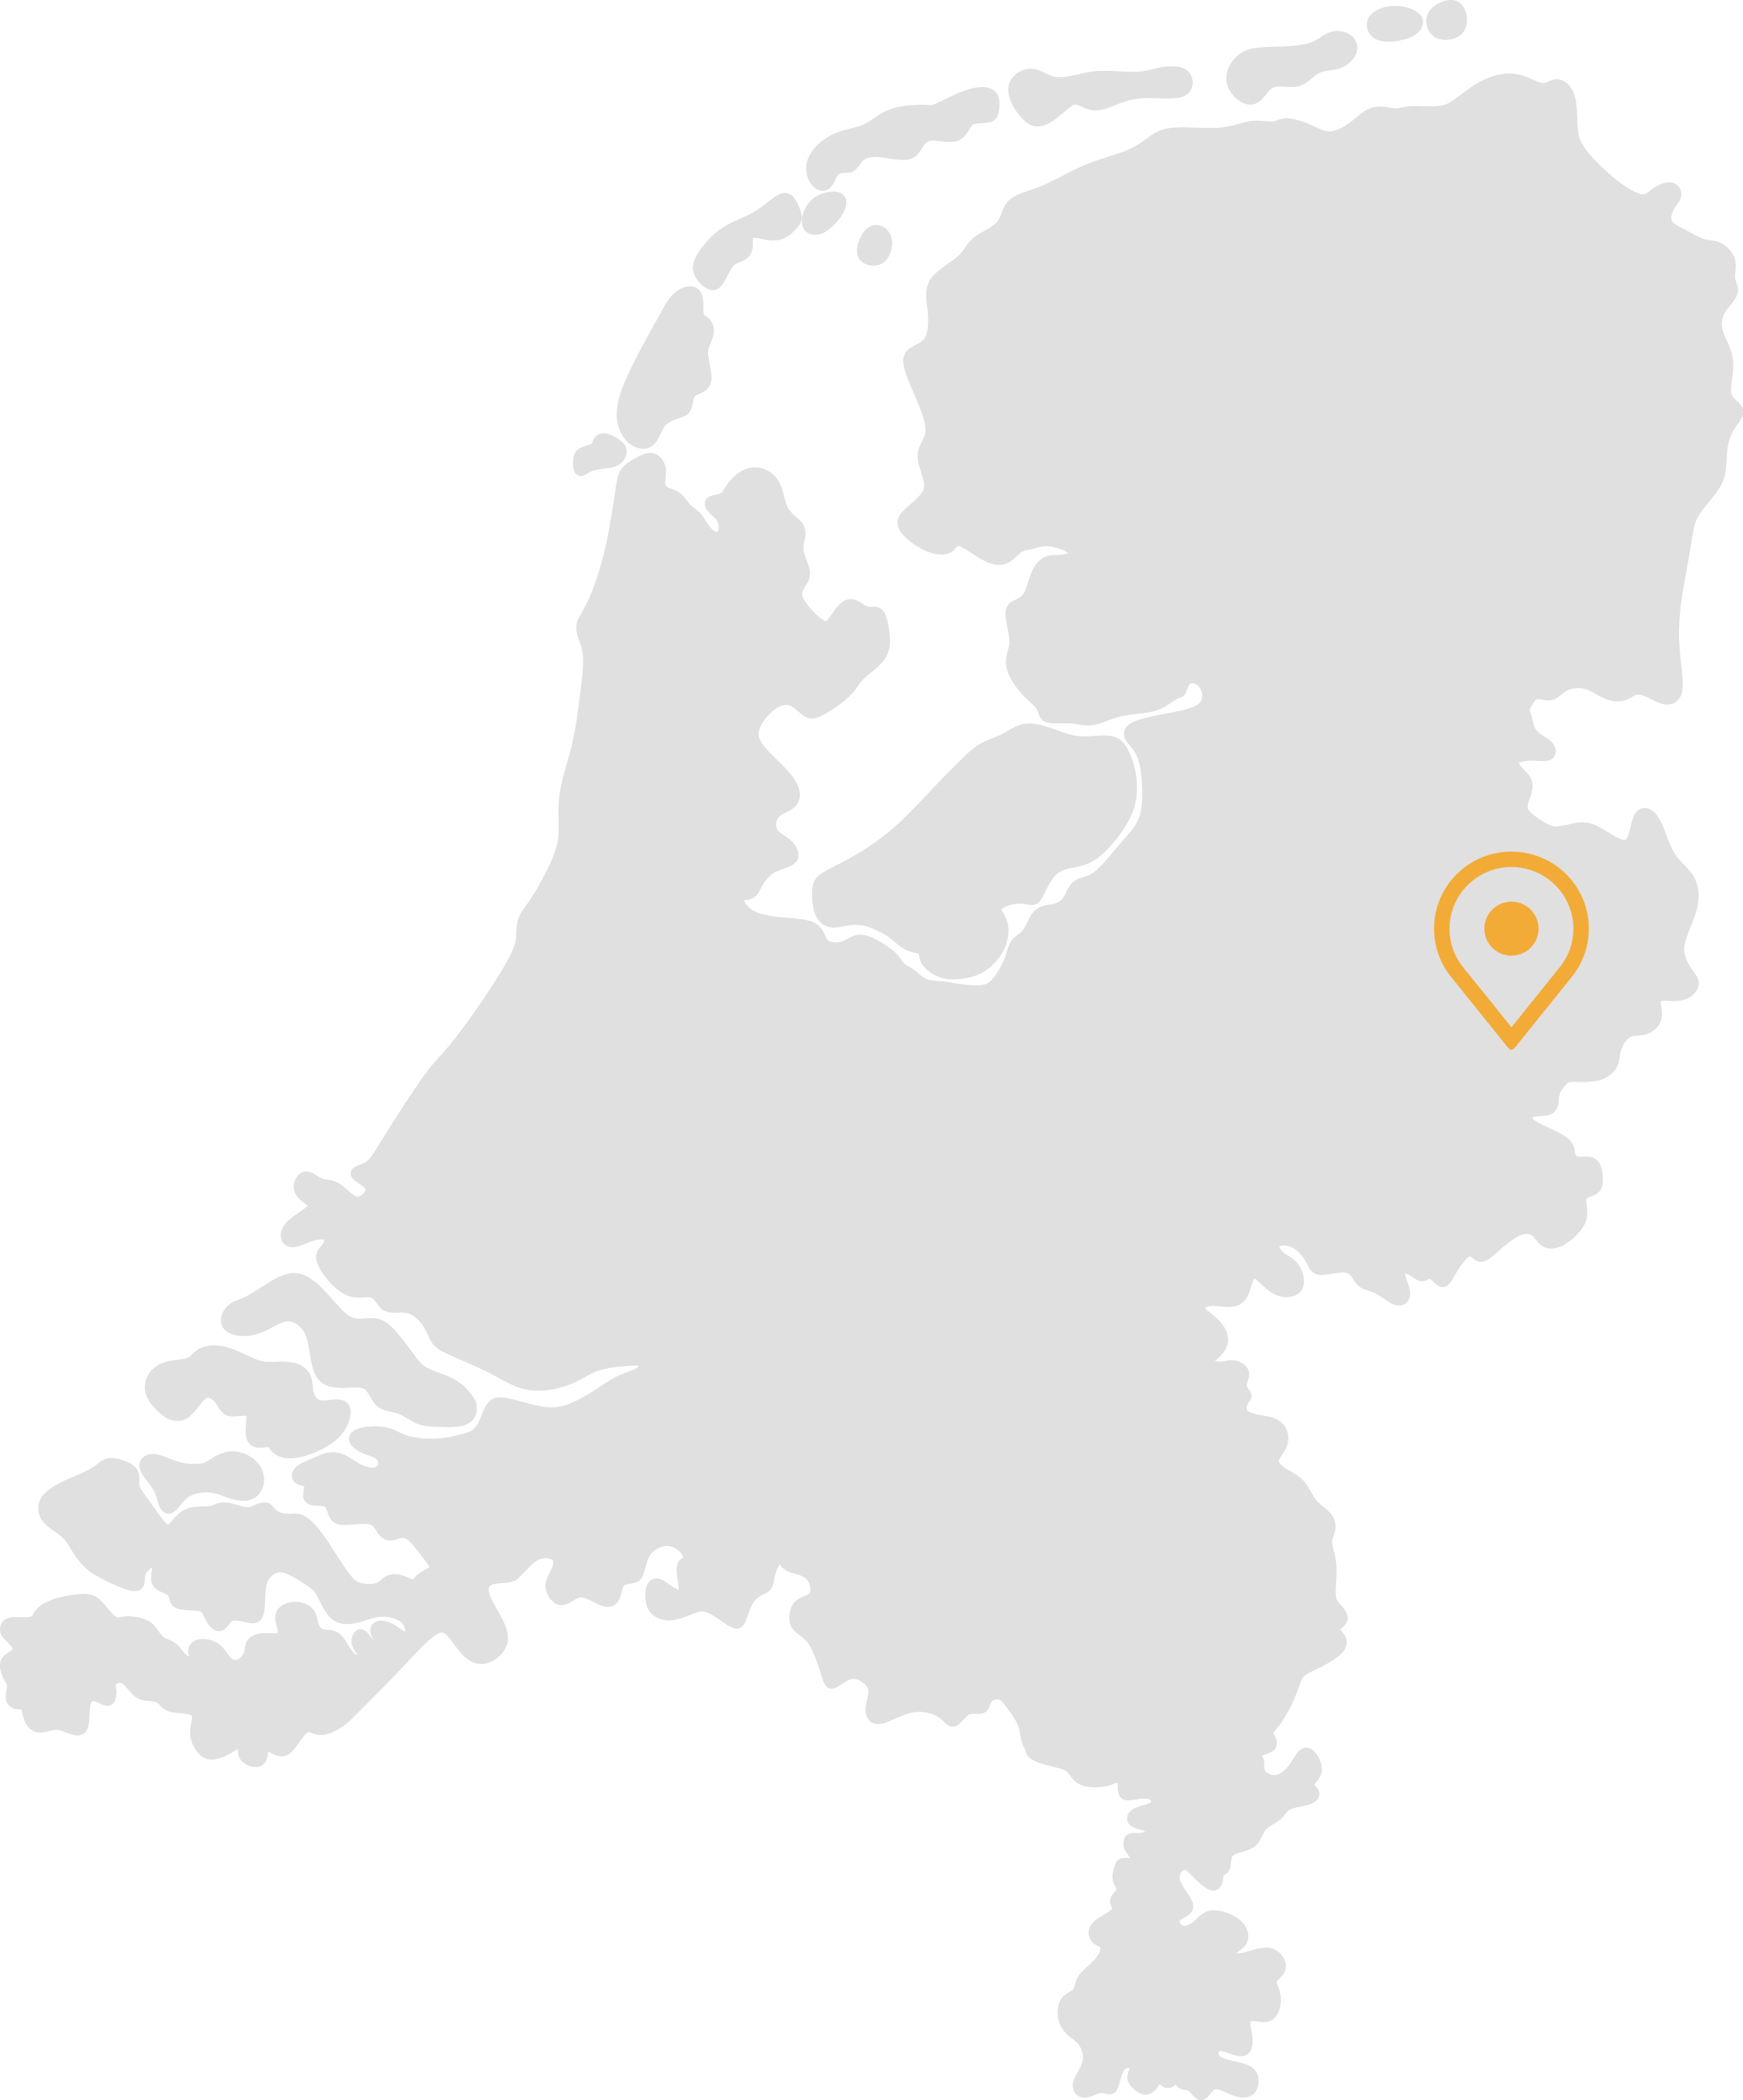 contact the office in The Netherlands